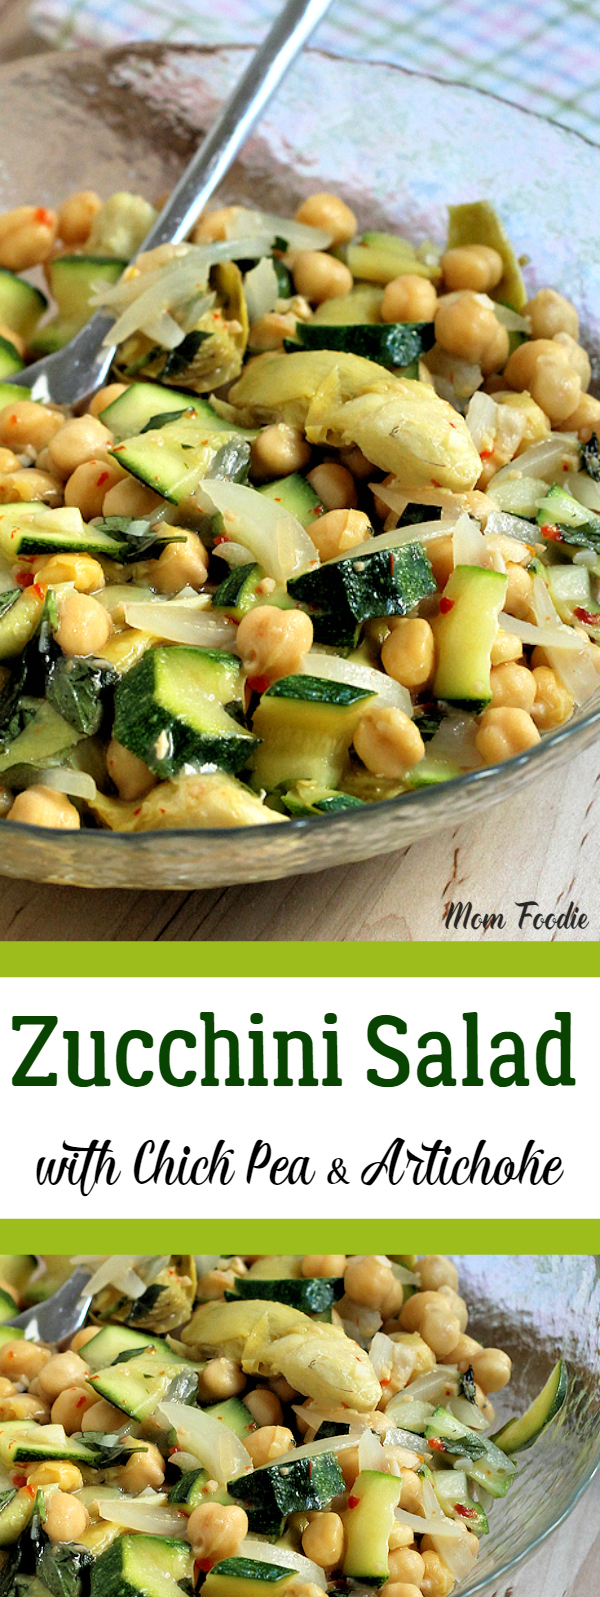 Zucchini Salad with Chick Pea & Artichoke